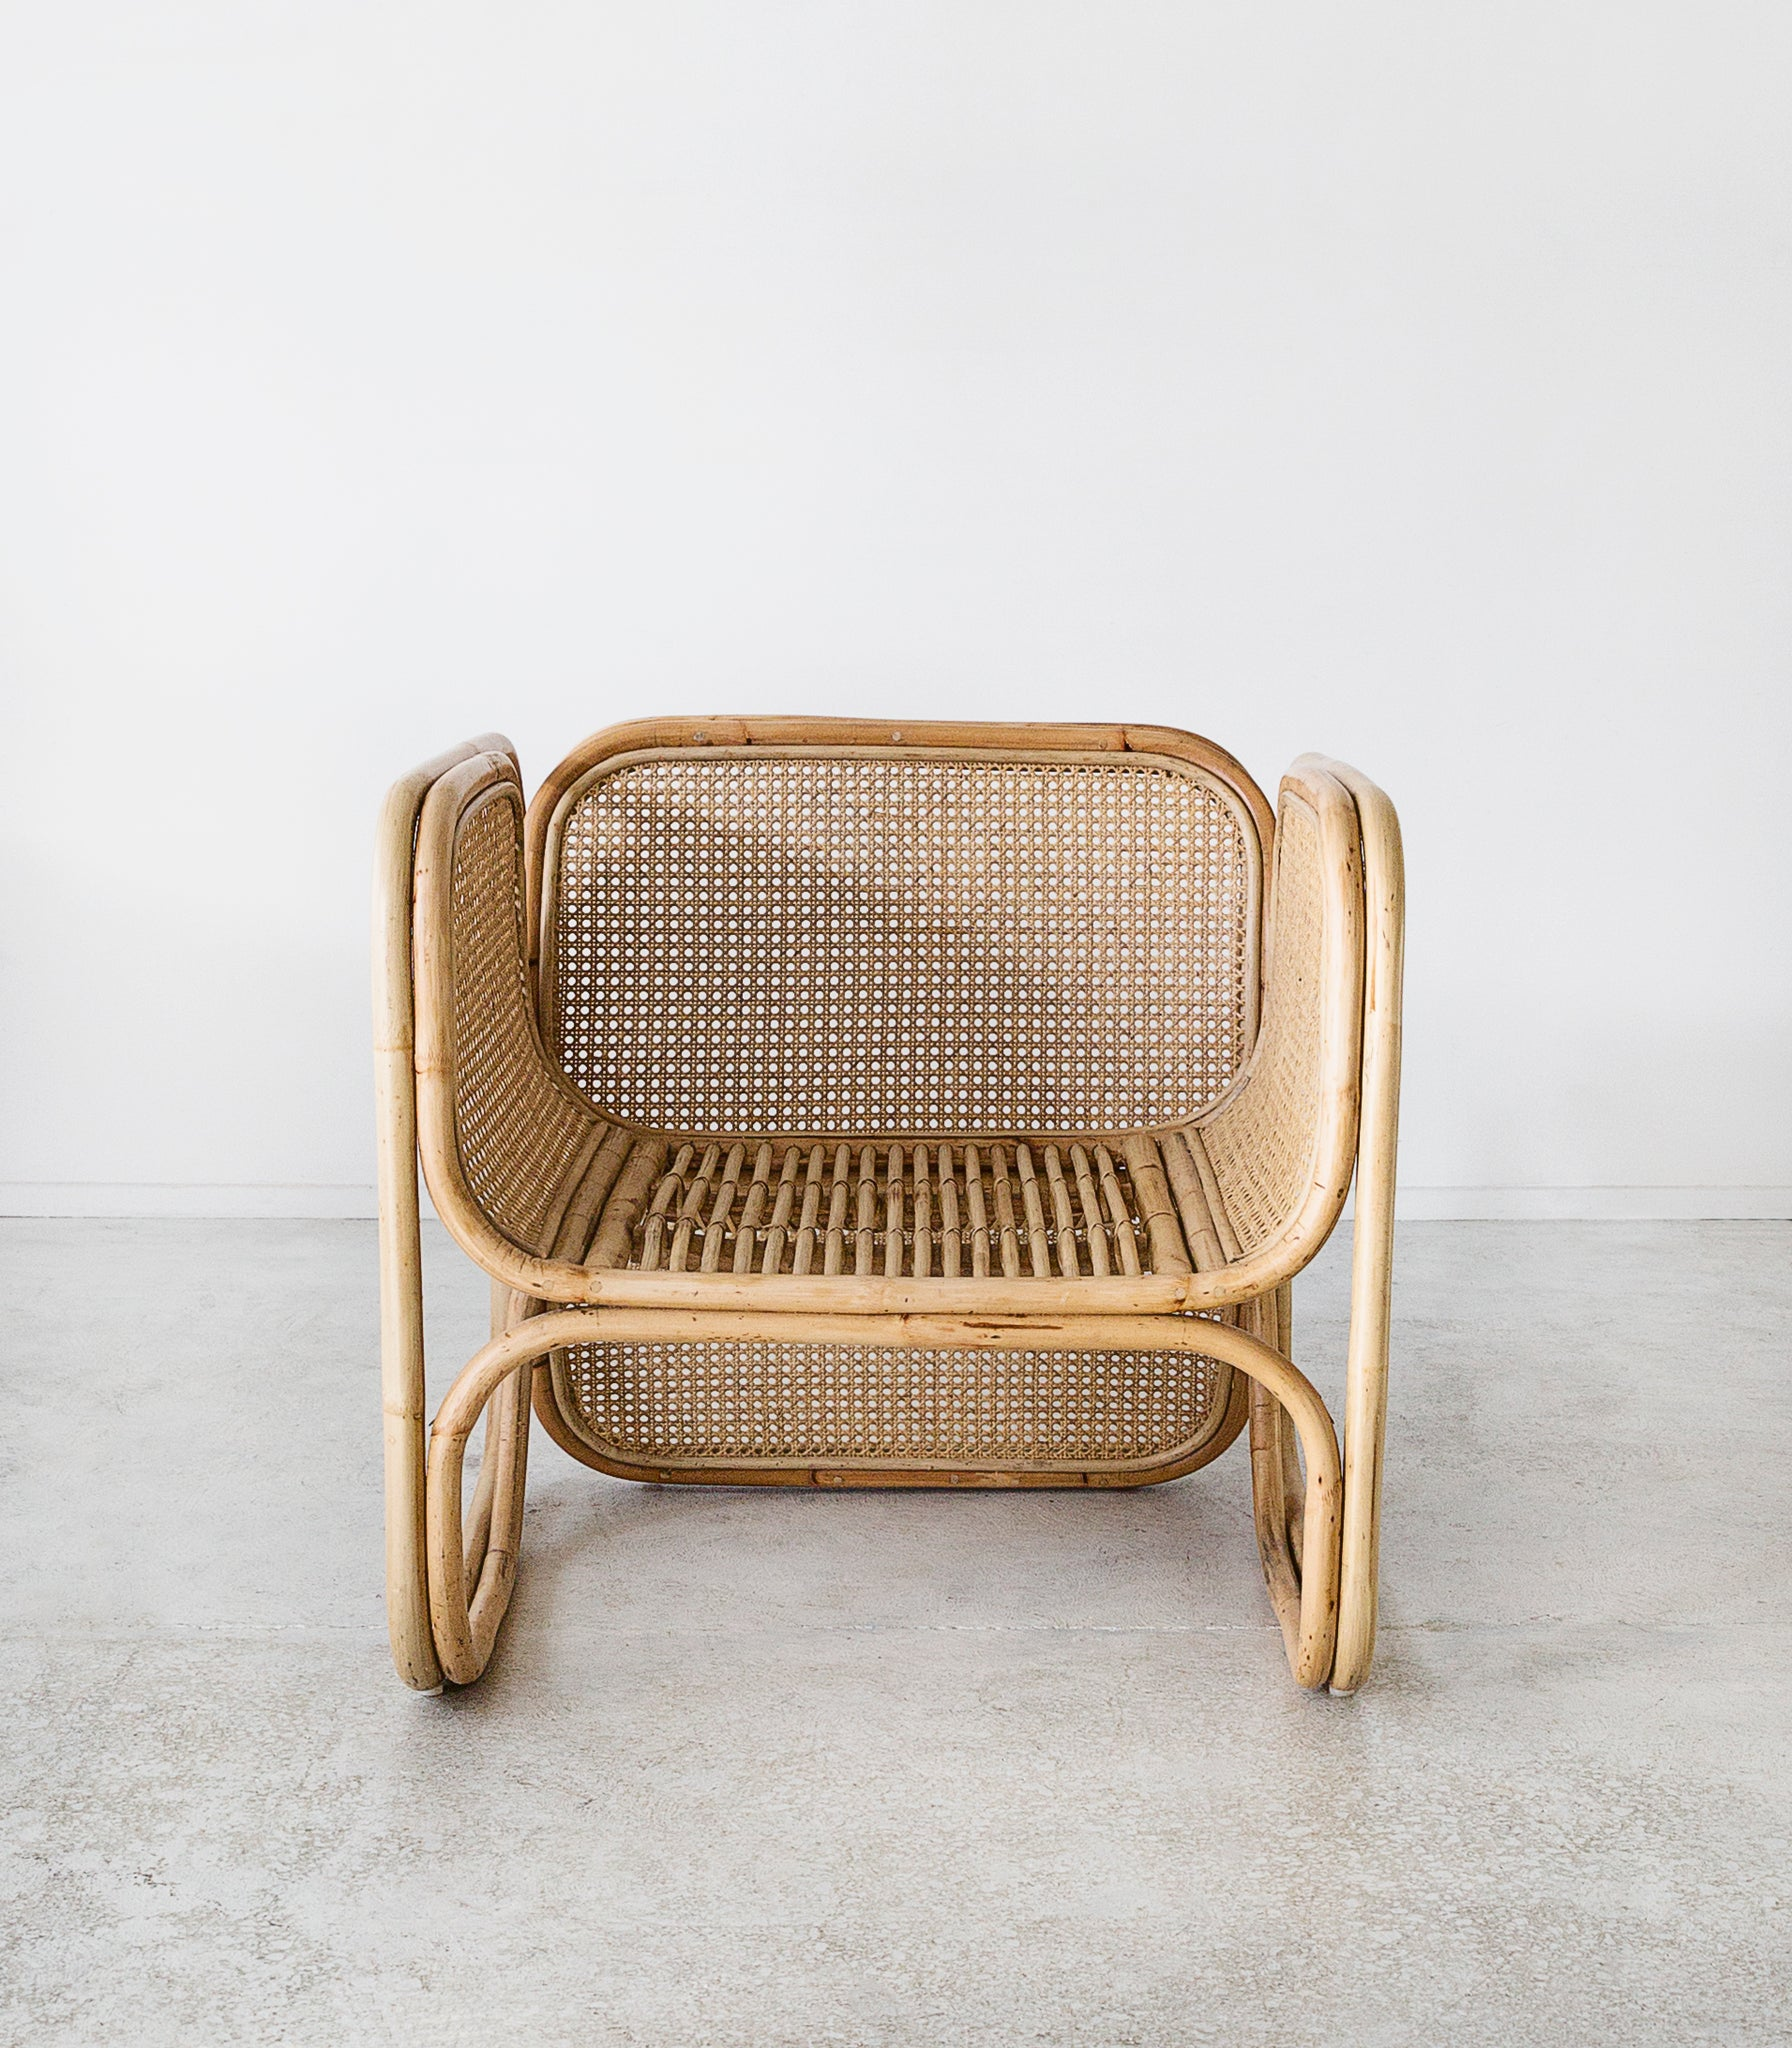 Woven rattan bamboo lounging chair